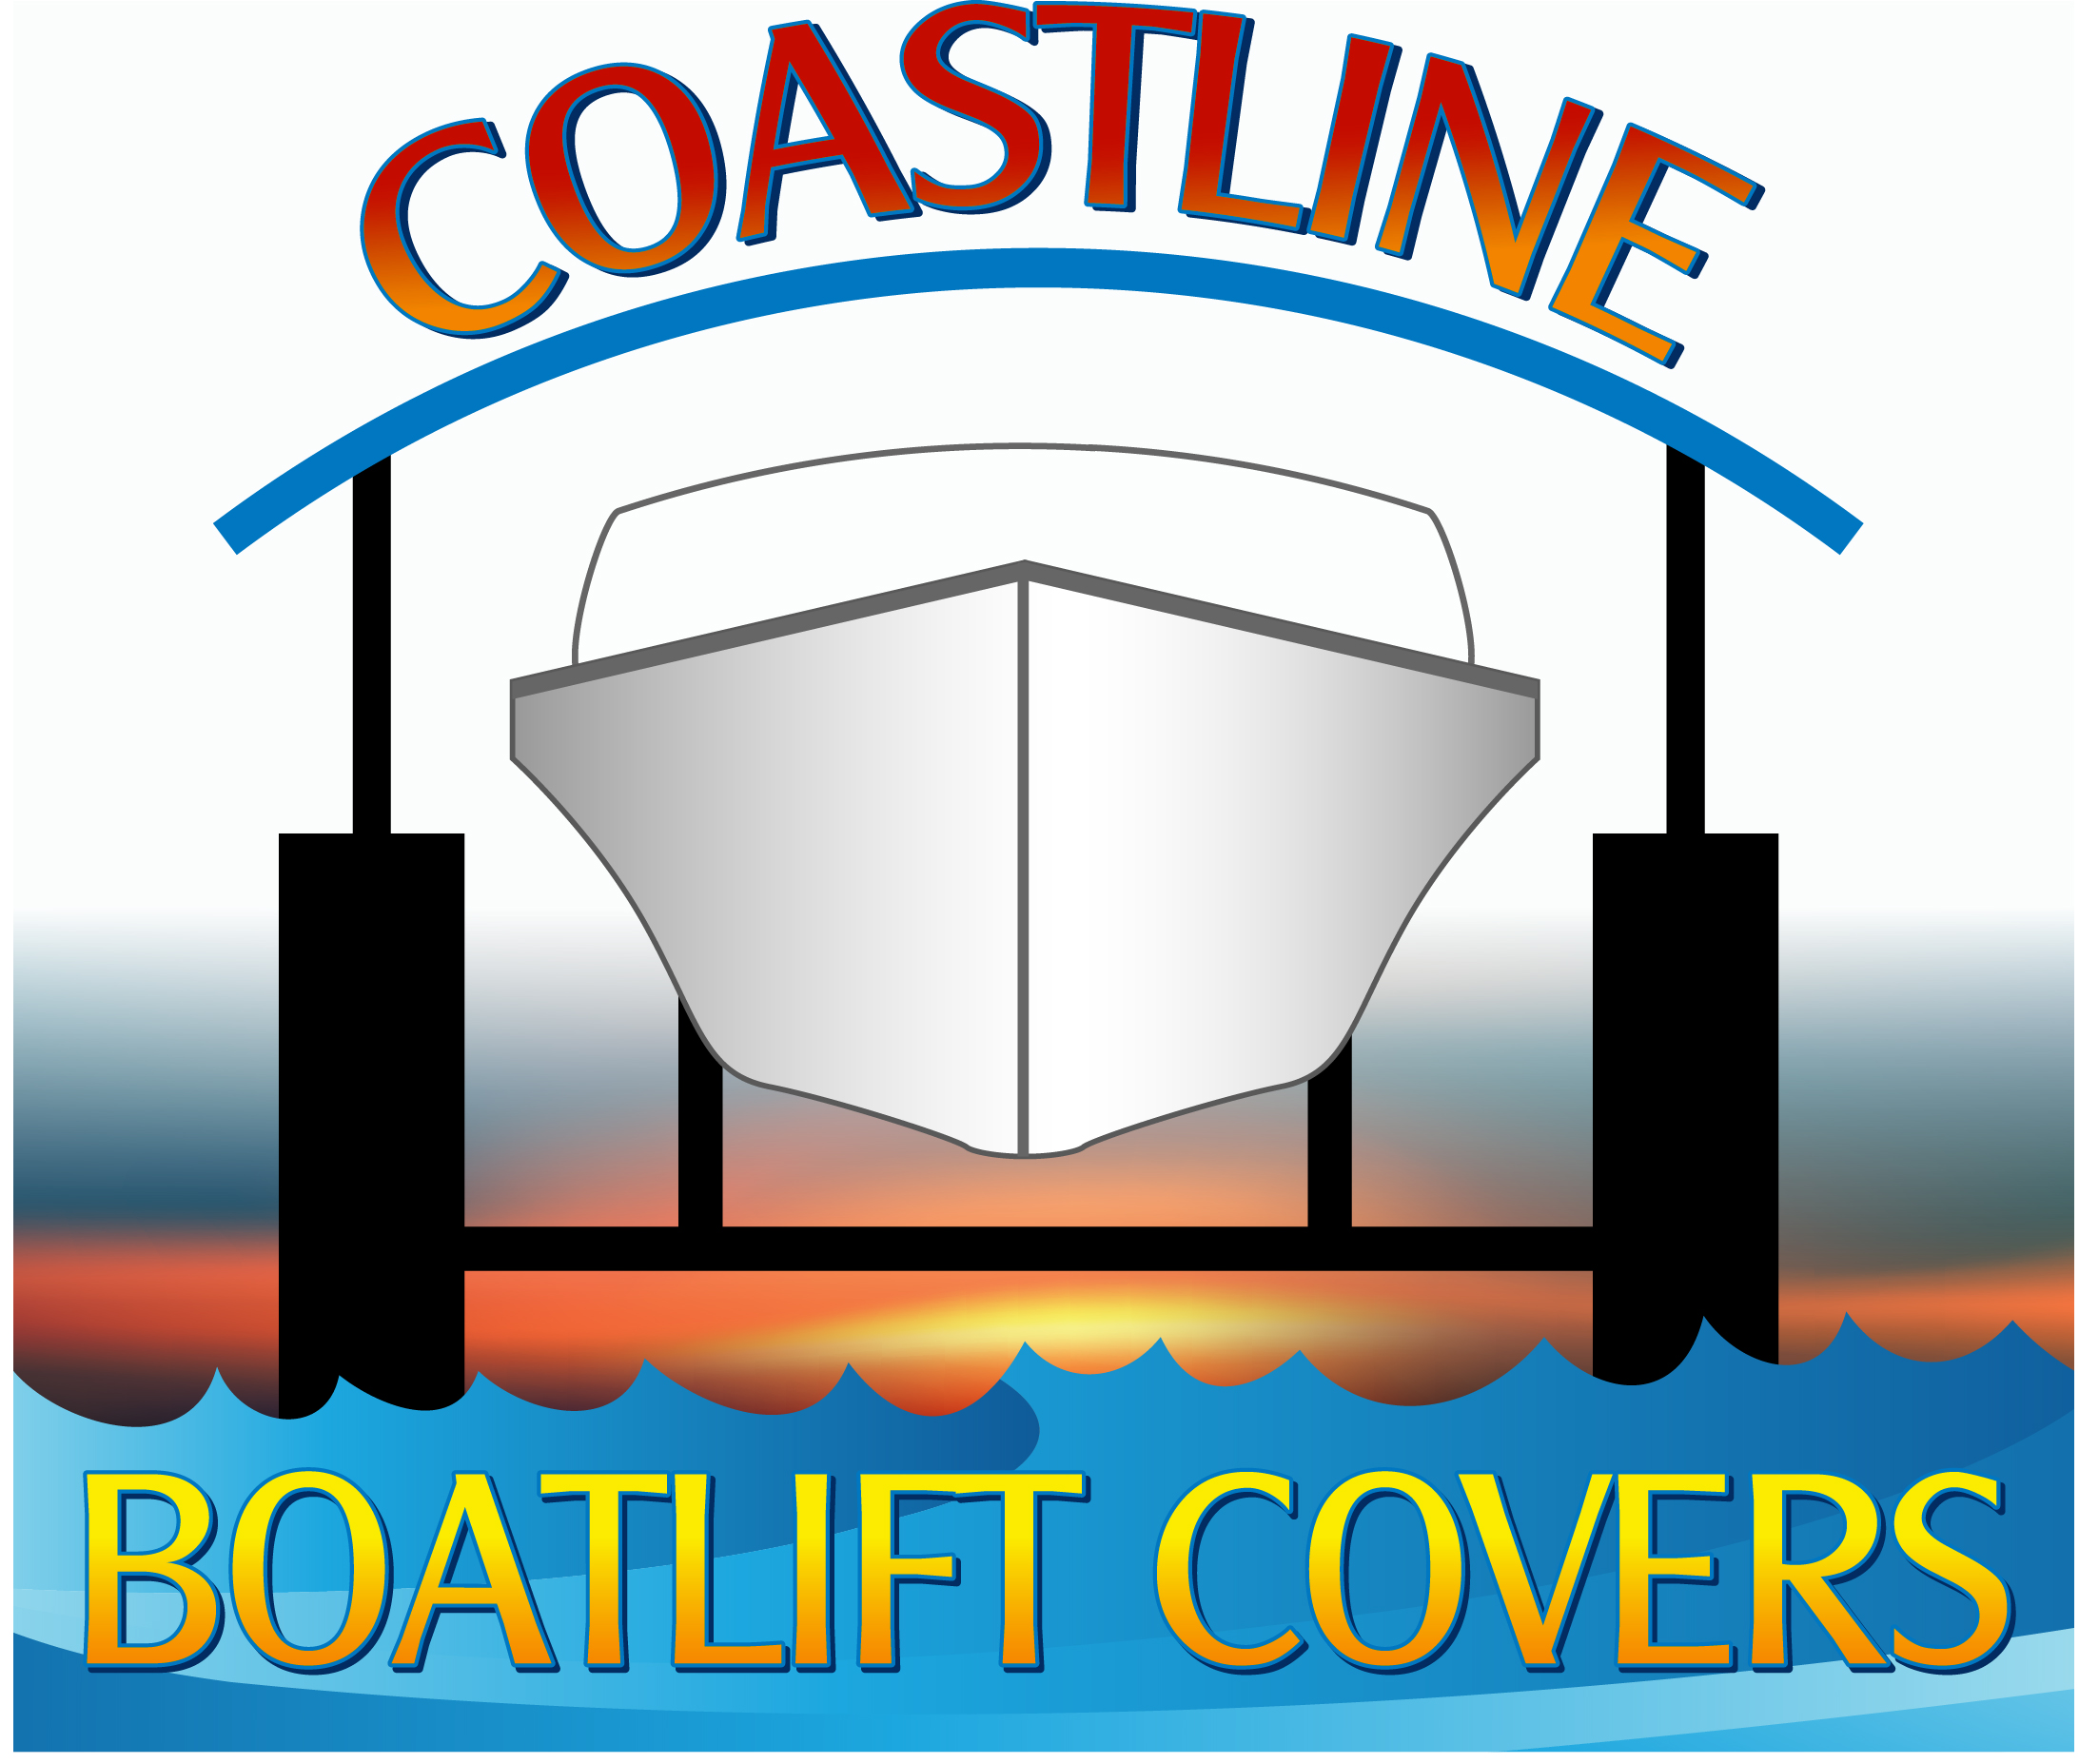 COASTLINE BOAT LIFT COVERS